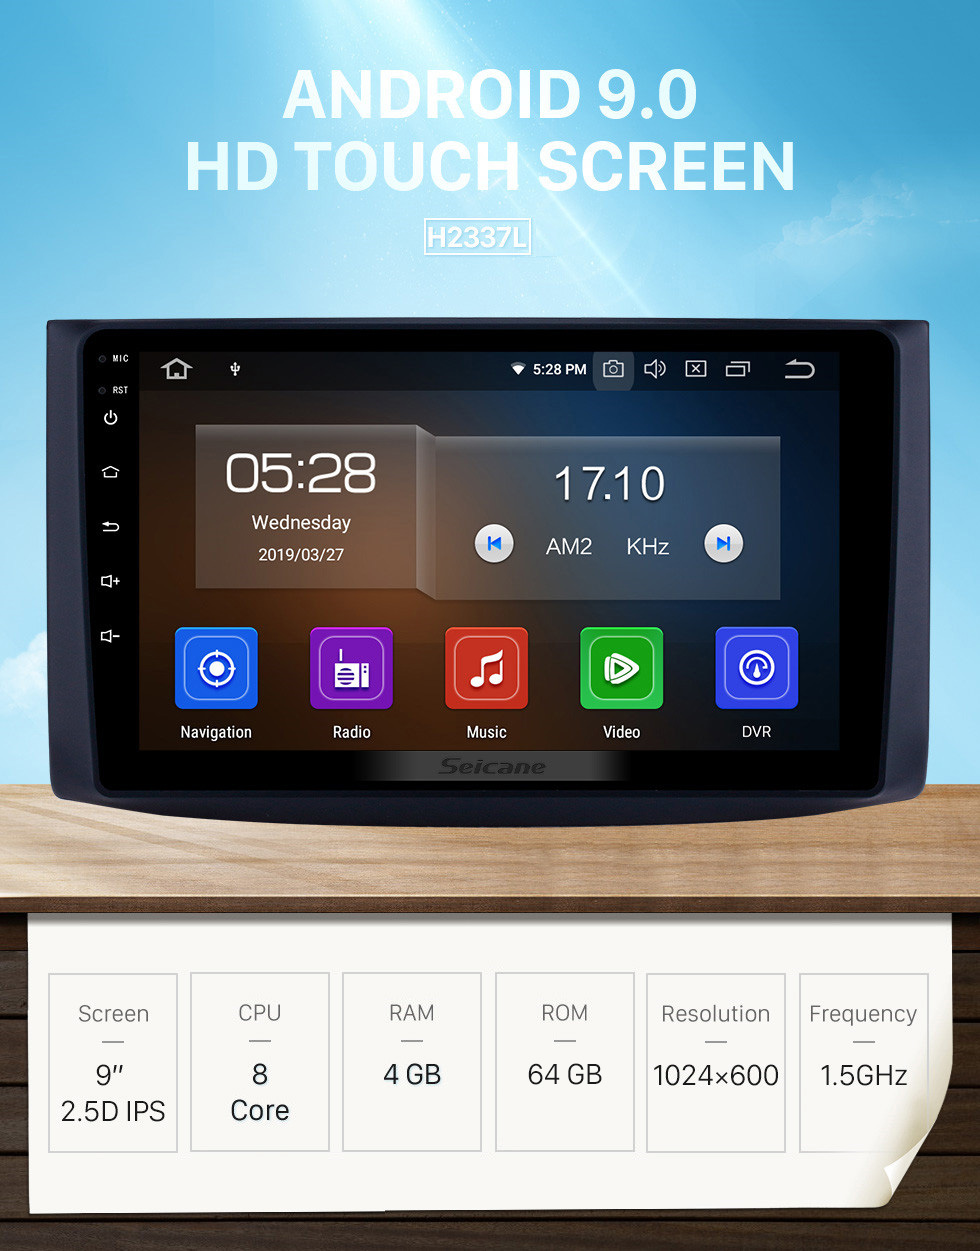 Seicane Android 9.0 HD Touchscreen 9 inch GPS Navigation Radio for 2006-2019 chevy Chevrolet Aveo/Lova/Captiva/Epica/RAVON Nexia R3/Gentra with Carplay Bluetooth support DAB+